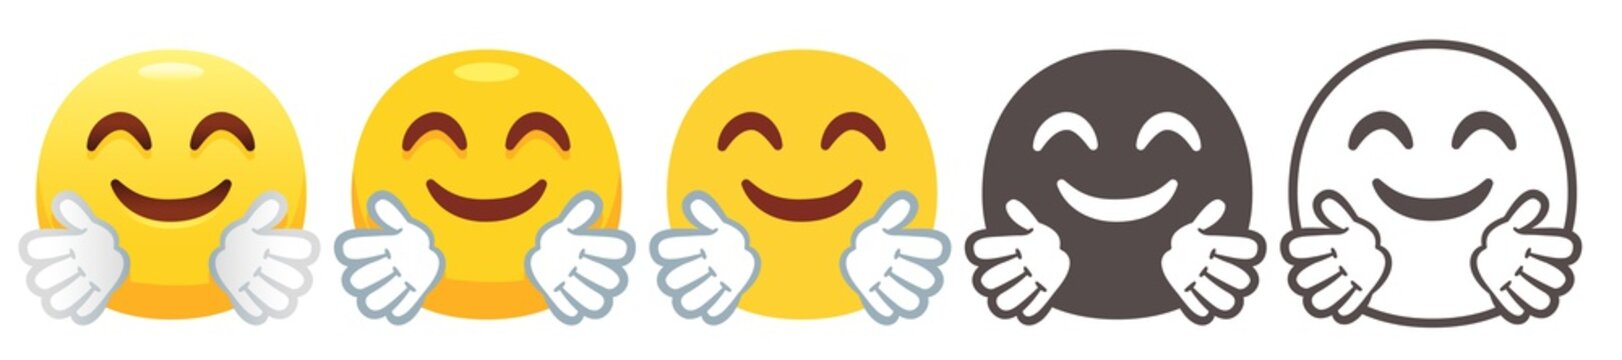 Hugging emoji. Happy face with smiling eyes, hug flat vector icon set